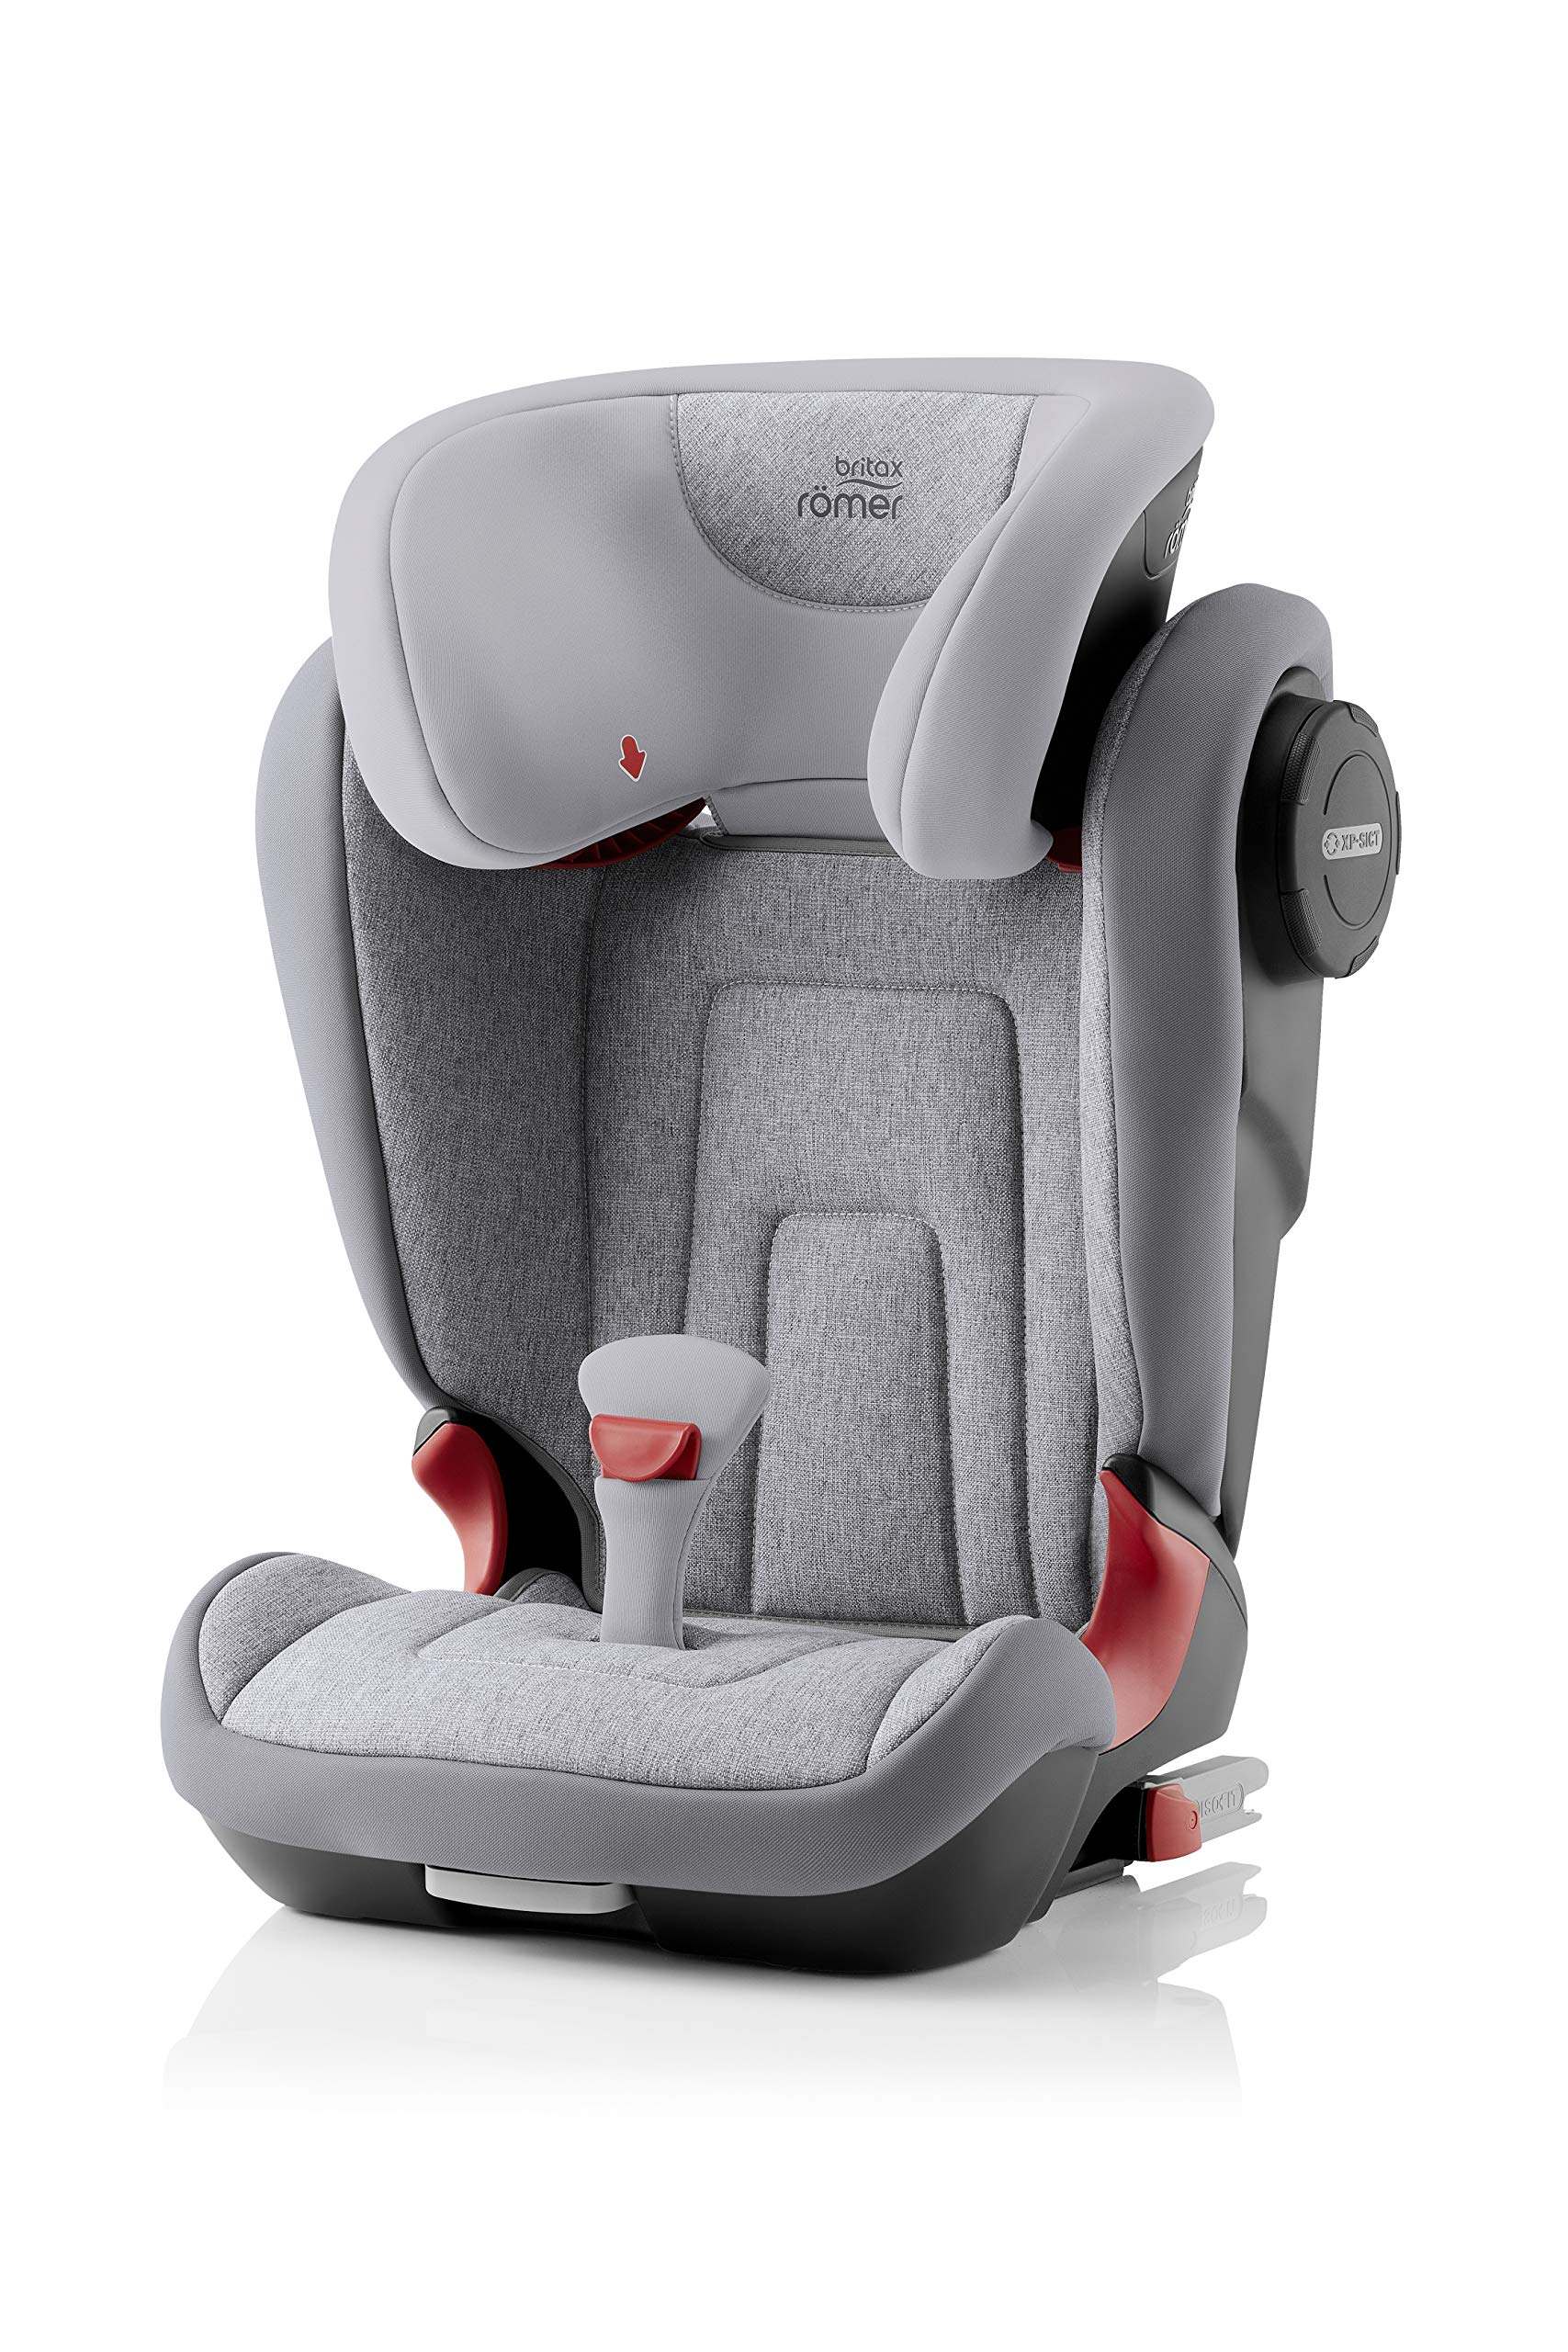 Britax Römer KIDFIX² S Group 2-3 (15-36kg) Car Seat - Grey Marble  Advanced side impact protection - sict offers superior protection to your child in the event of a side collision. reducing impact forces by minimising the distance between the car and the car seat. Secure guard - helps to protect your child's delicate abdominal area by adding an extra - a 4th - contact point to the 3-point seat belt. High back booster - protects your child in 3 ways: provides head to hip protection; belt guides provide correct positioning of the seat belt and the padded headrest provides safety and comfort. 1